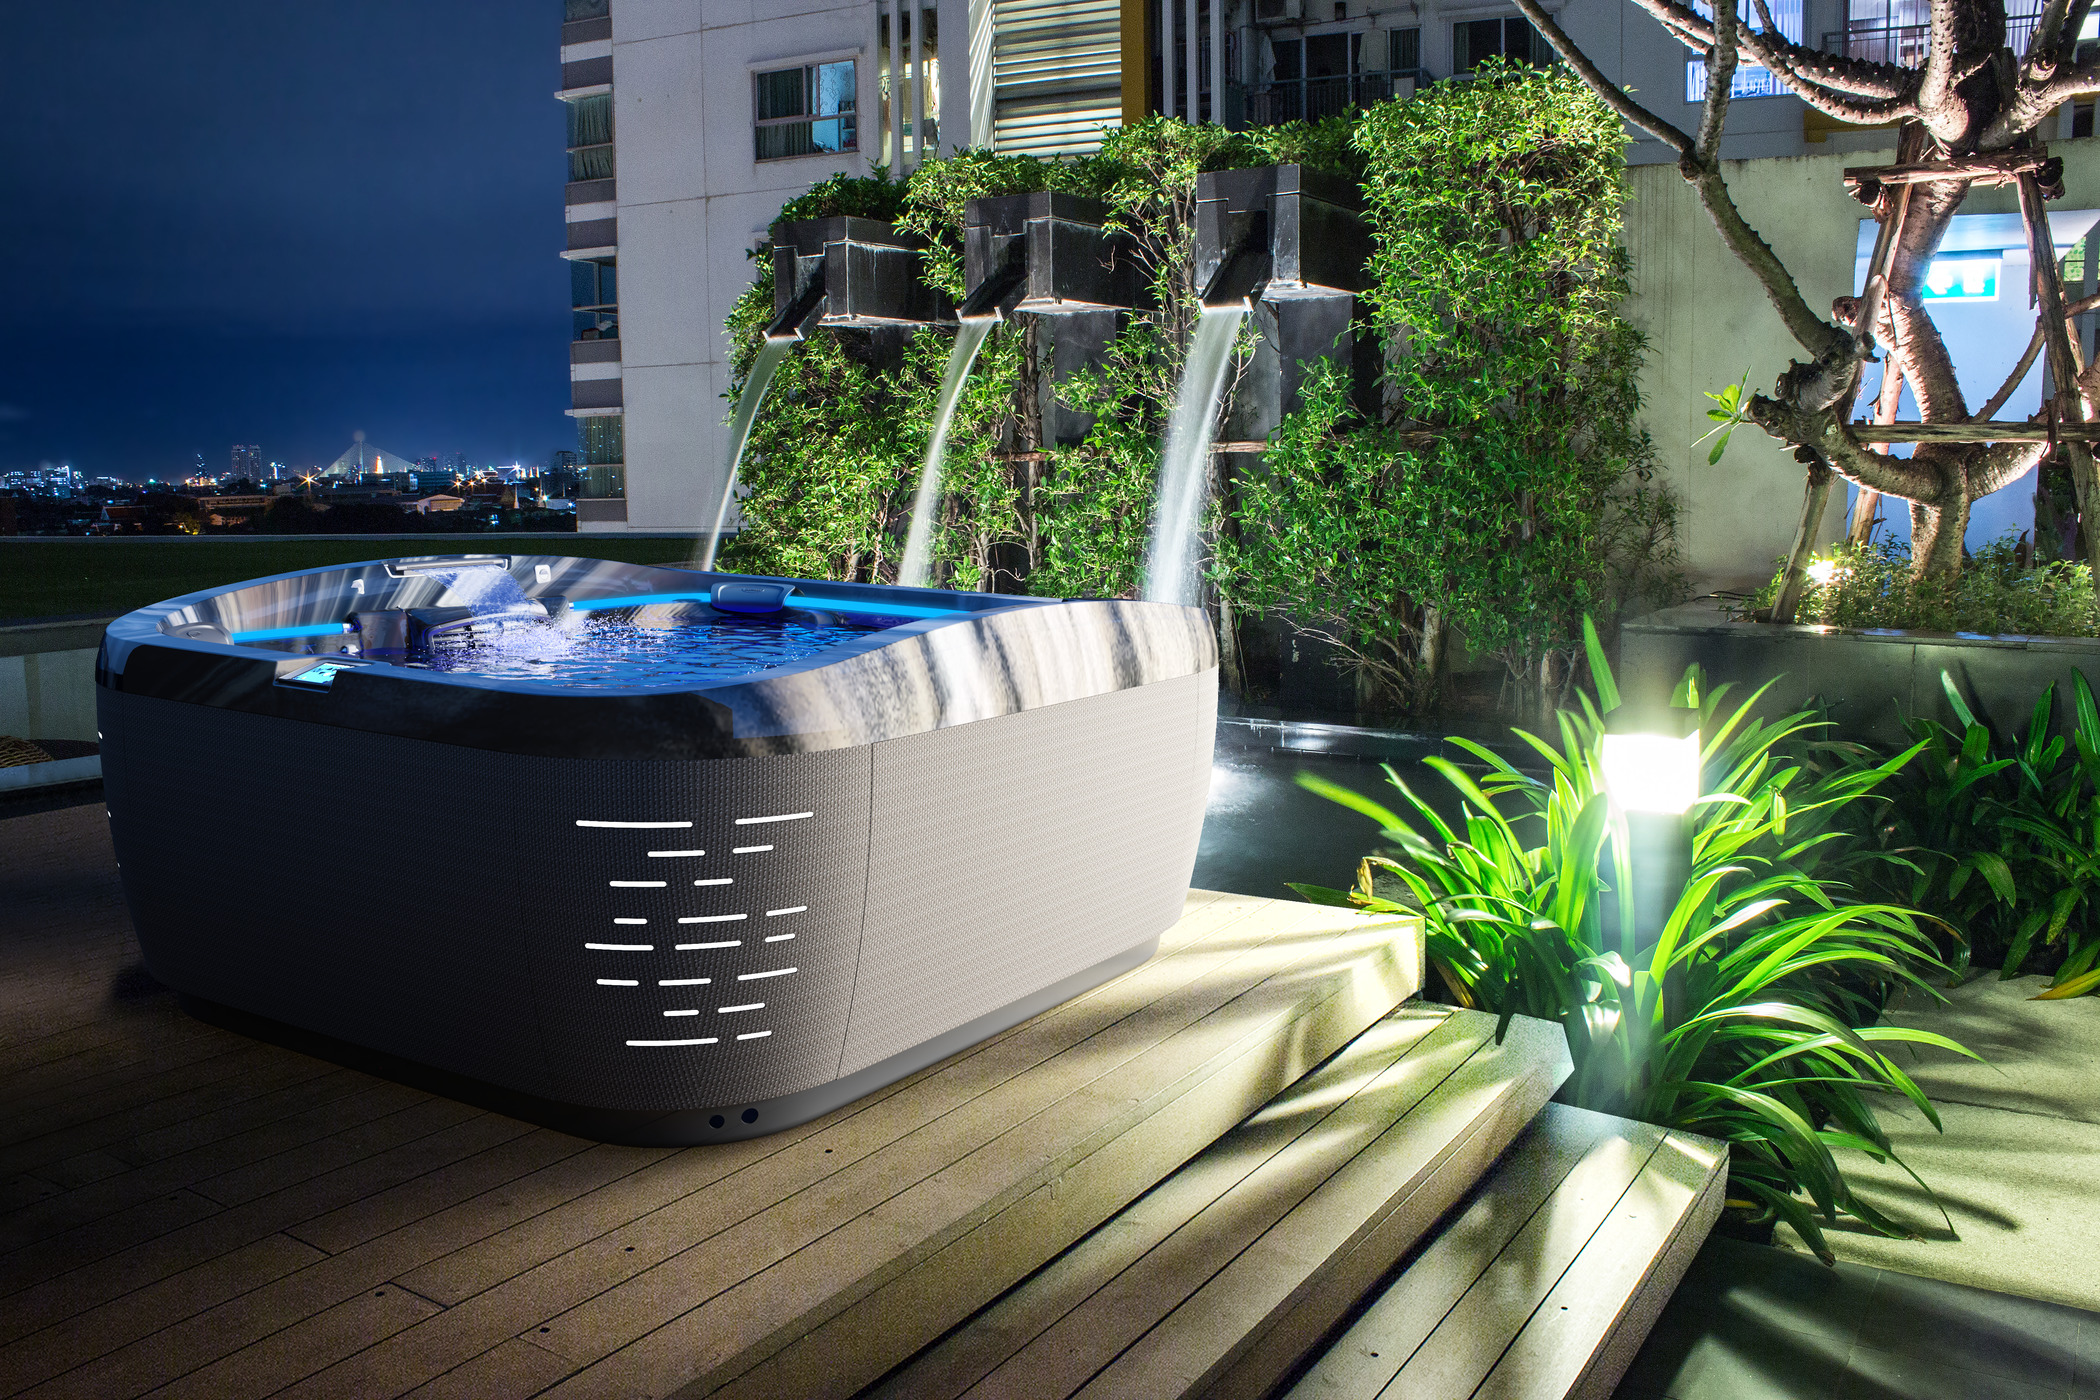 Outdoor hot tub installation at night.